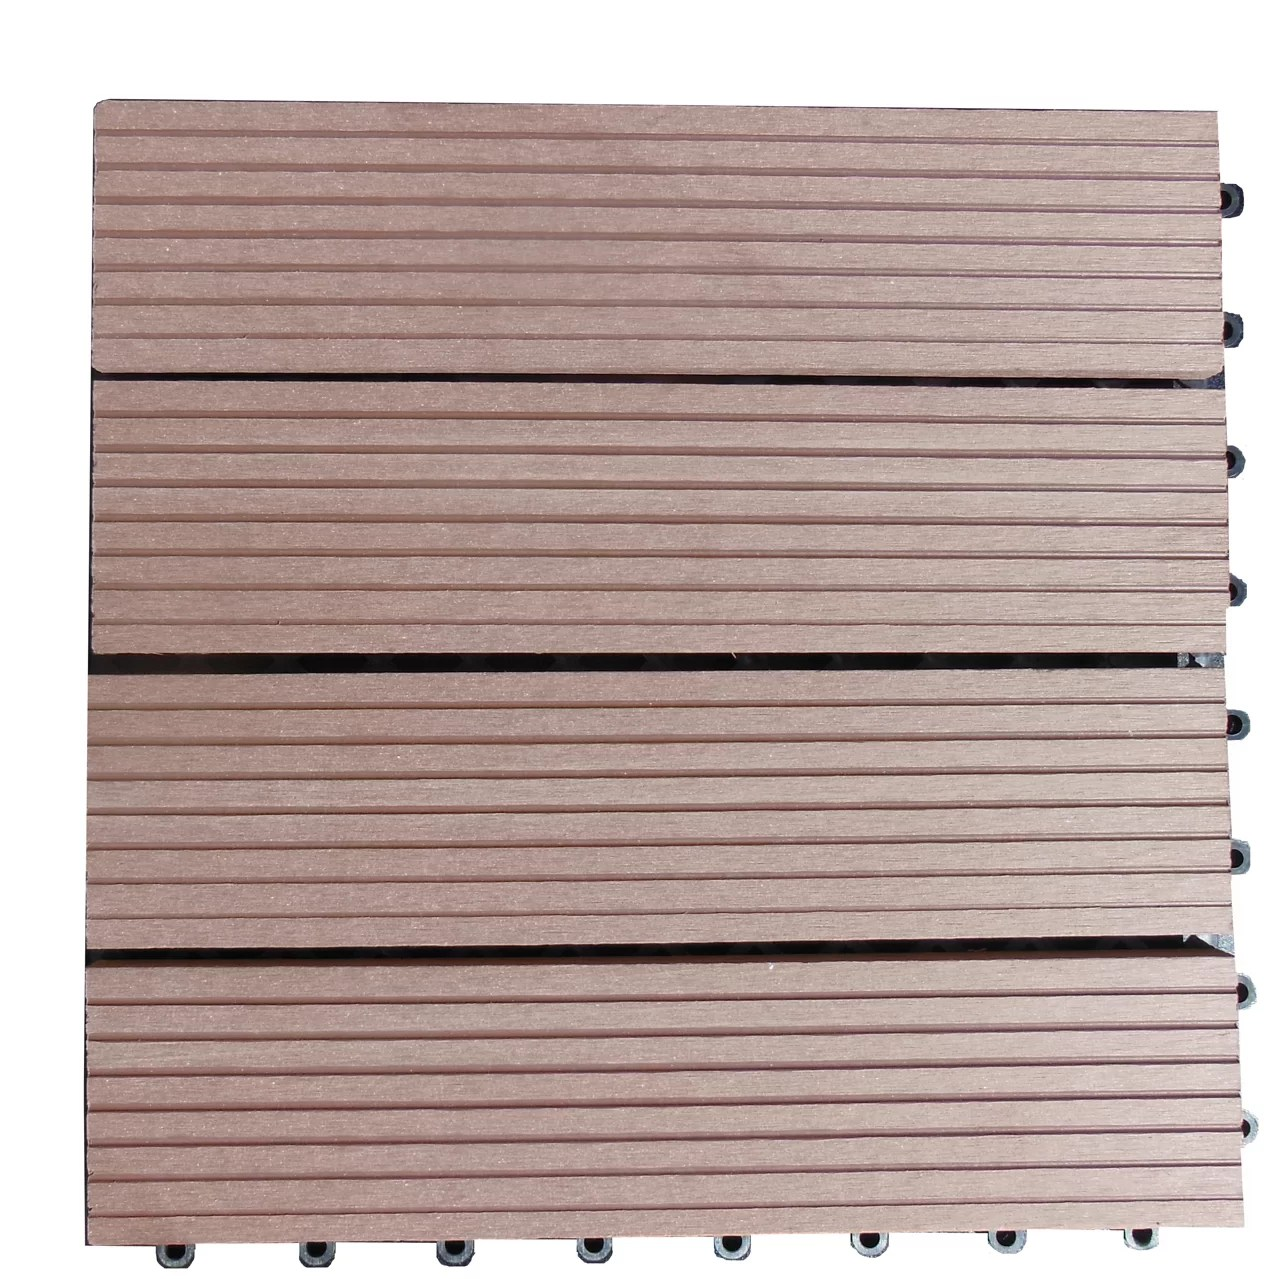 Composite Deck Tiles Centuryoutdoorliving Composite 12 Quot X 12 Quot Interlocking Deck